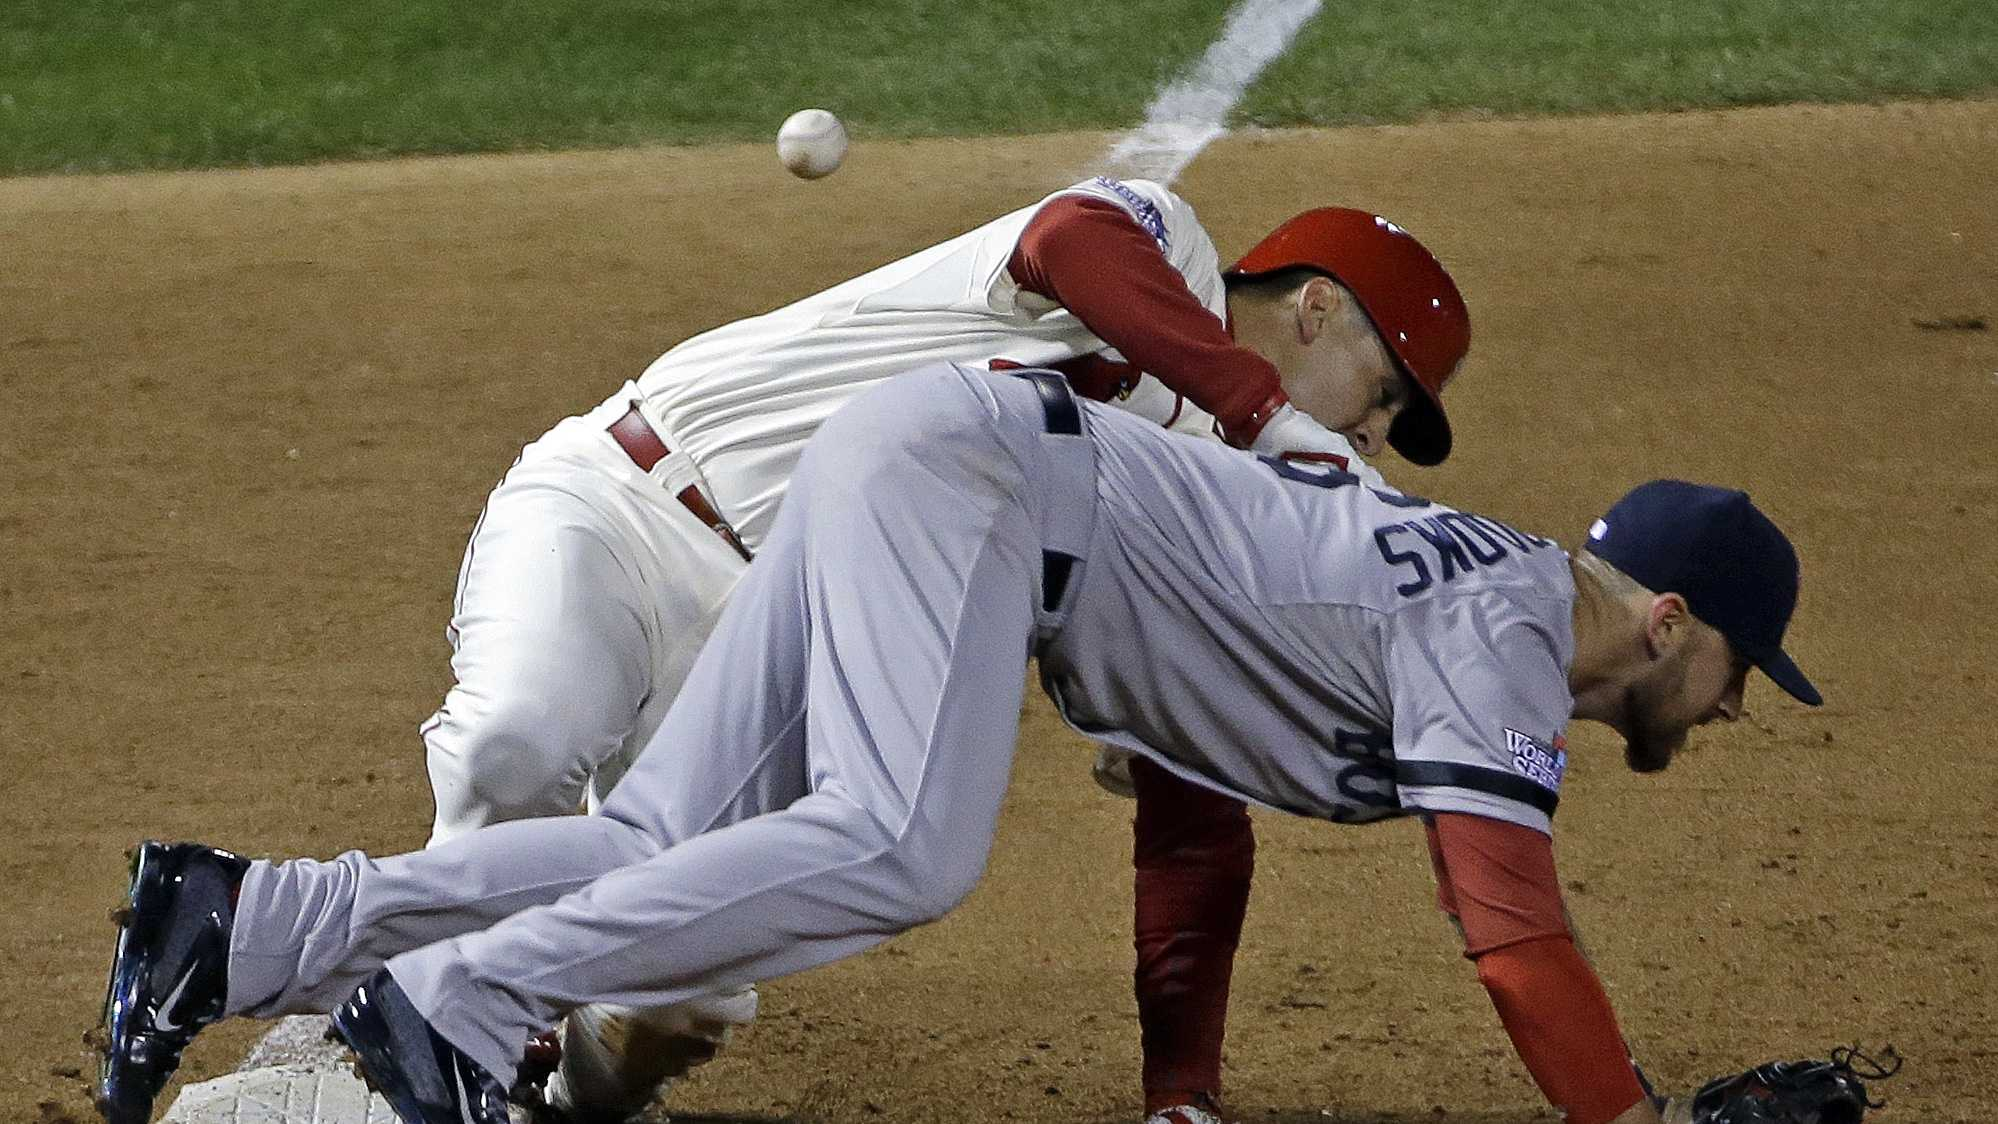 St. Louis Cardinals' Allen Craig gets tangled with Boston Red Sox's Will Middlebrooks during the ninth inning of Game 3 of baseball's World Series Saturday, Oct. 26, 2013, in St. Louis. Middlebrooks was called for obstruction on the play and Craig went in to score the game-winning run. The Cardinals won 5-4 to take a 2-1 lead in the series.